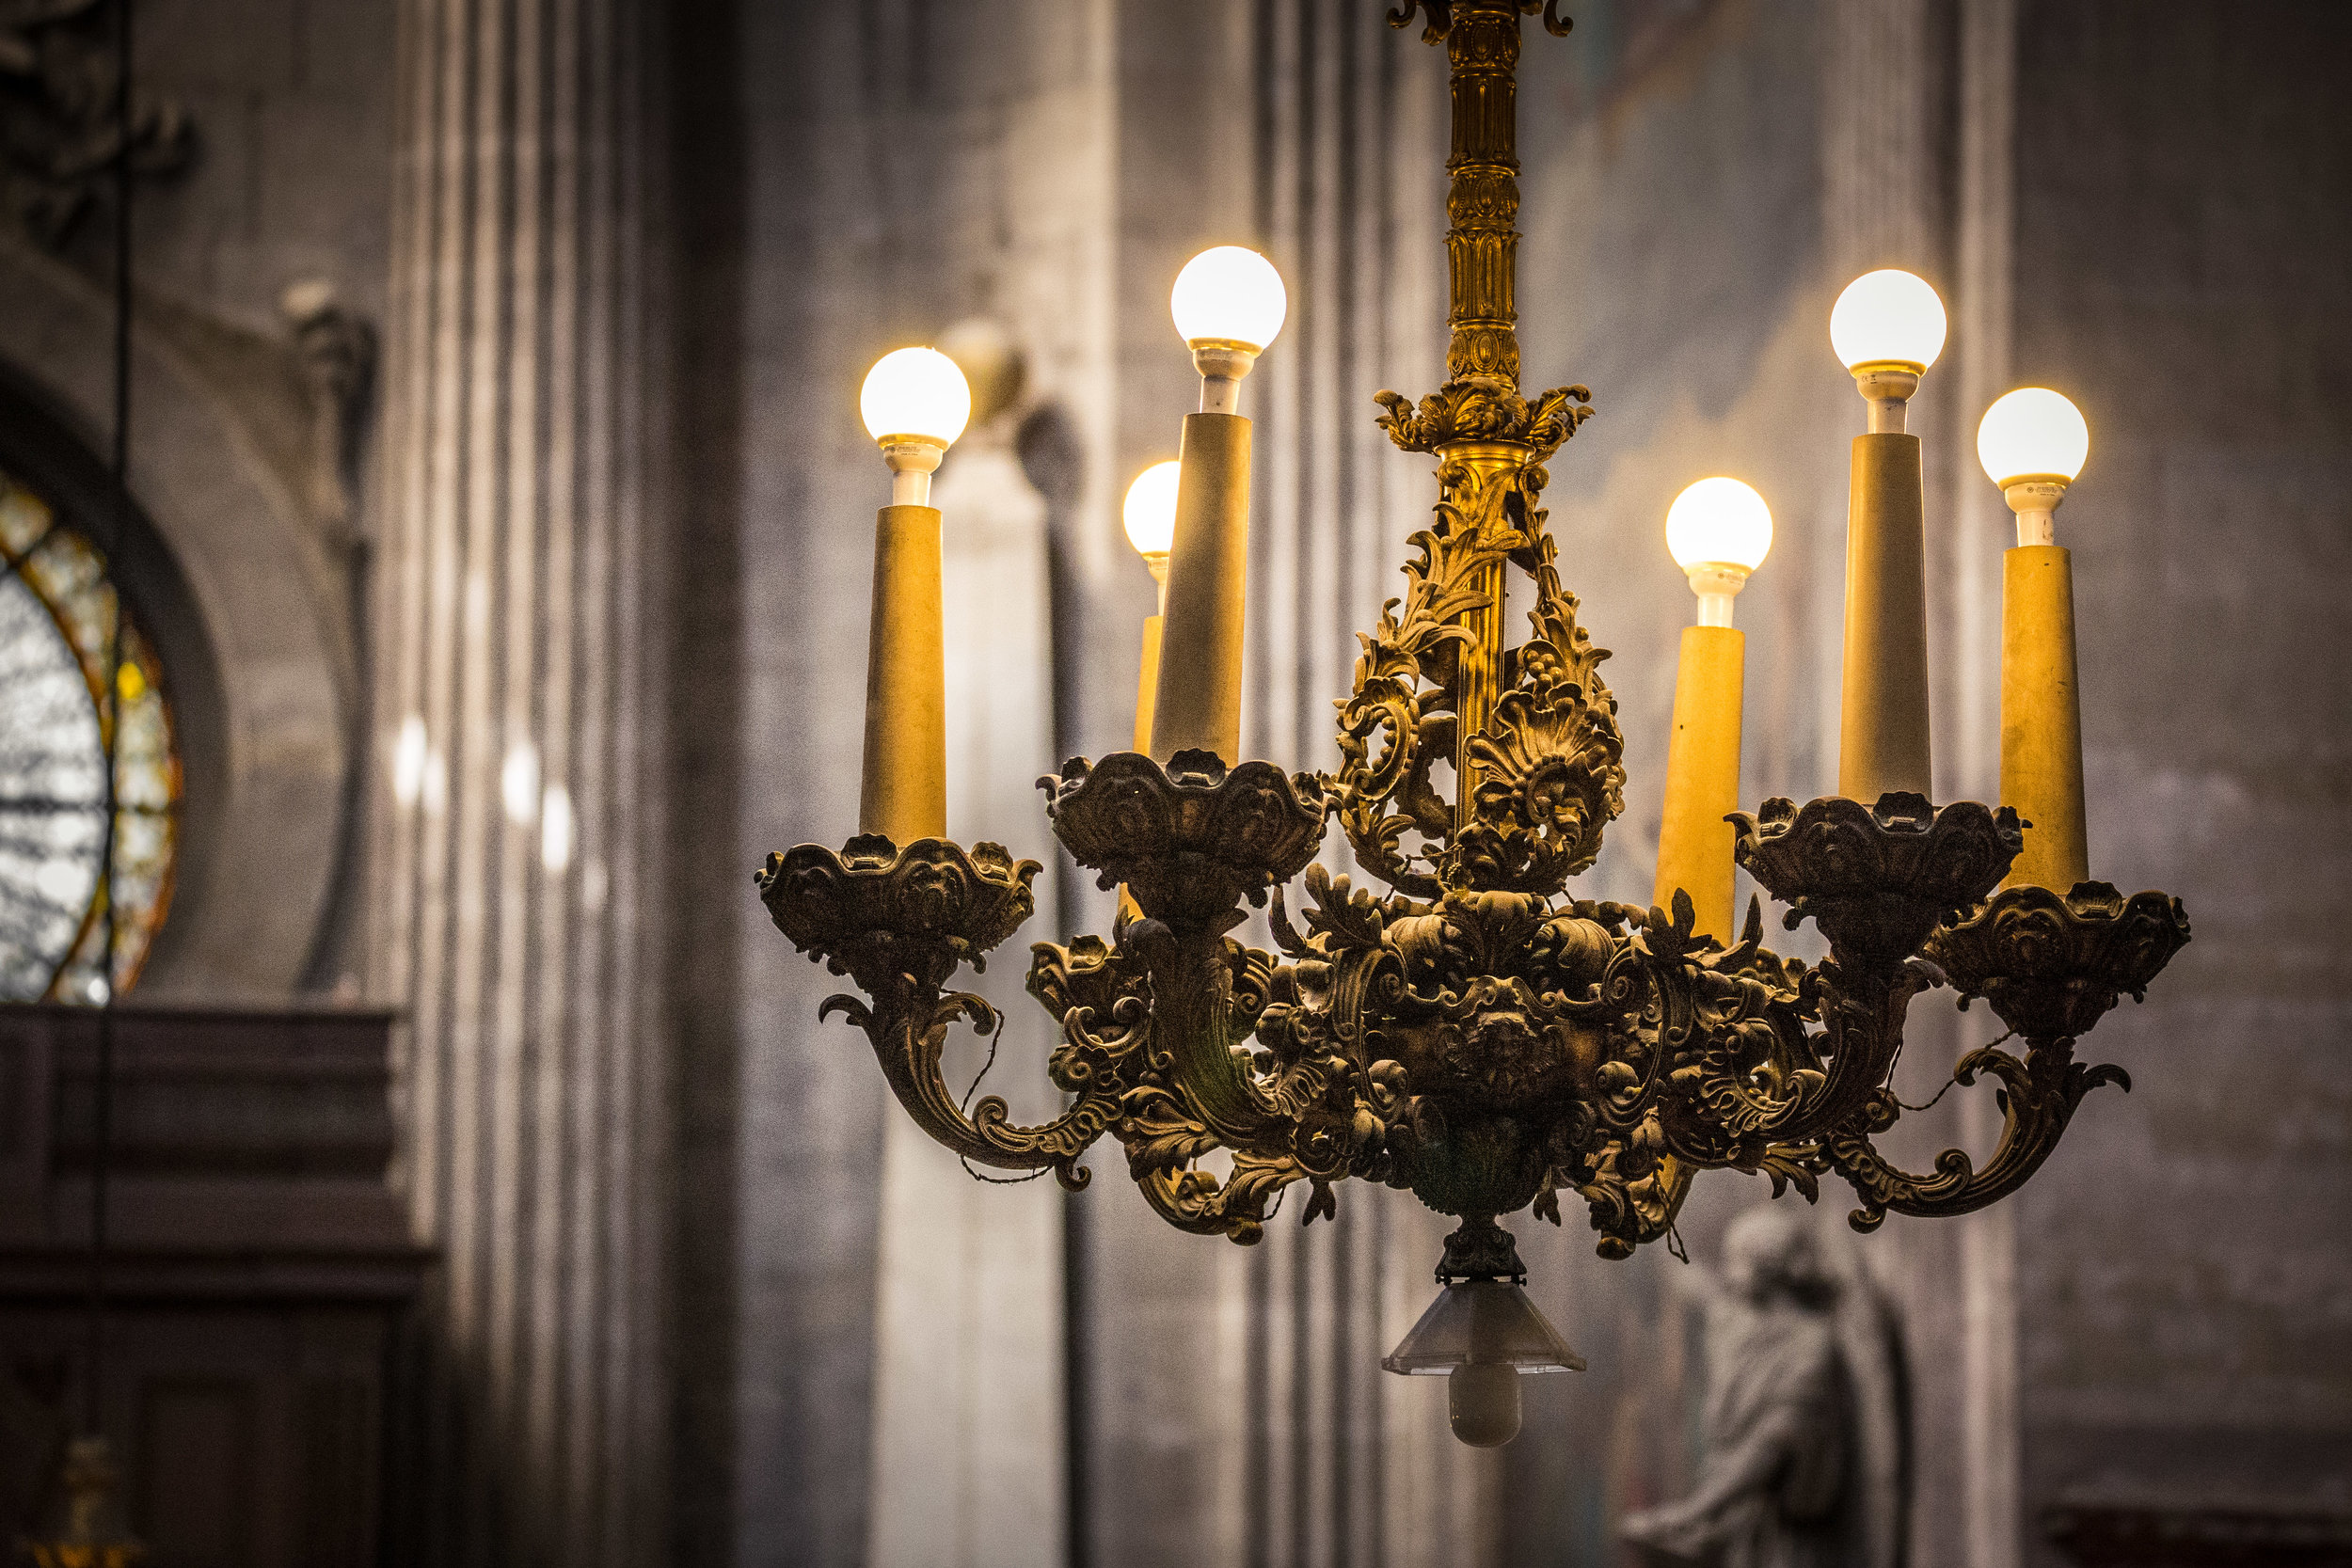 chandelier-in-church.jpg